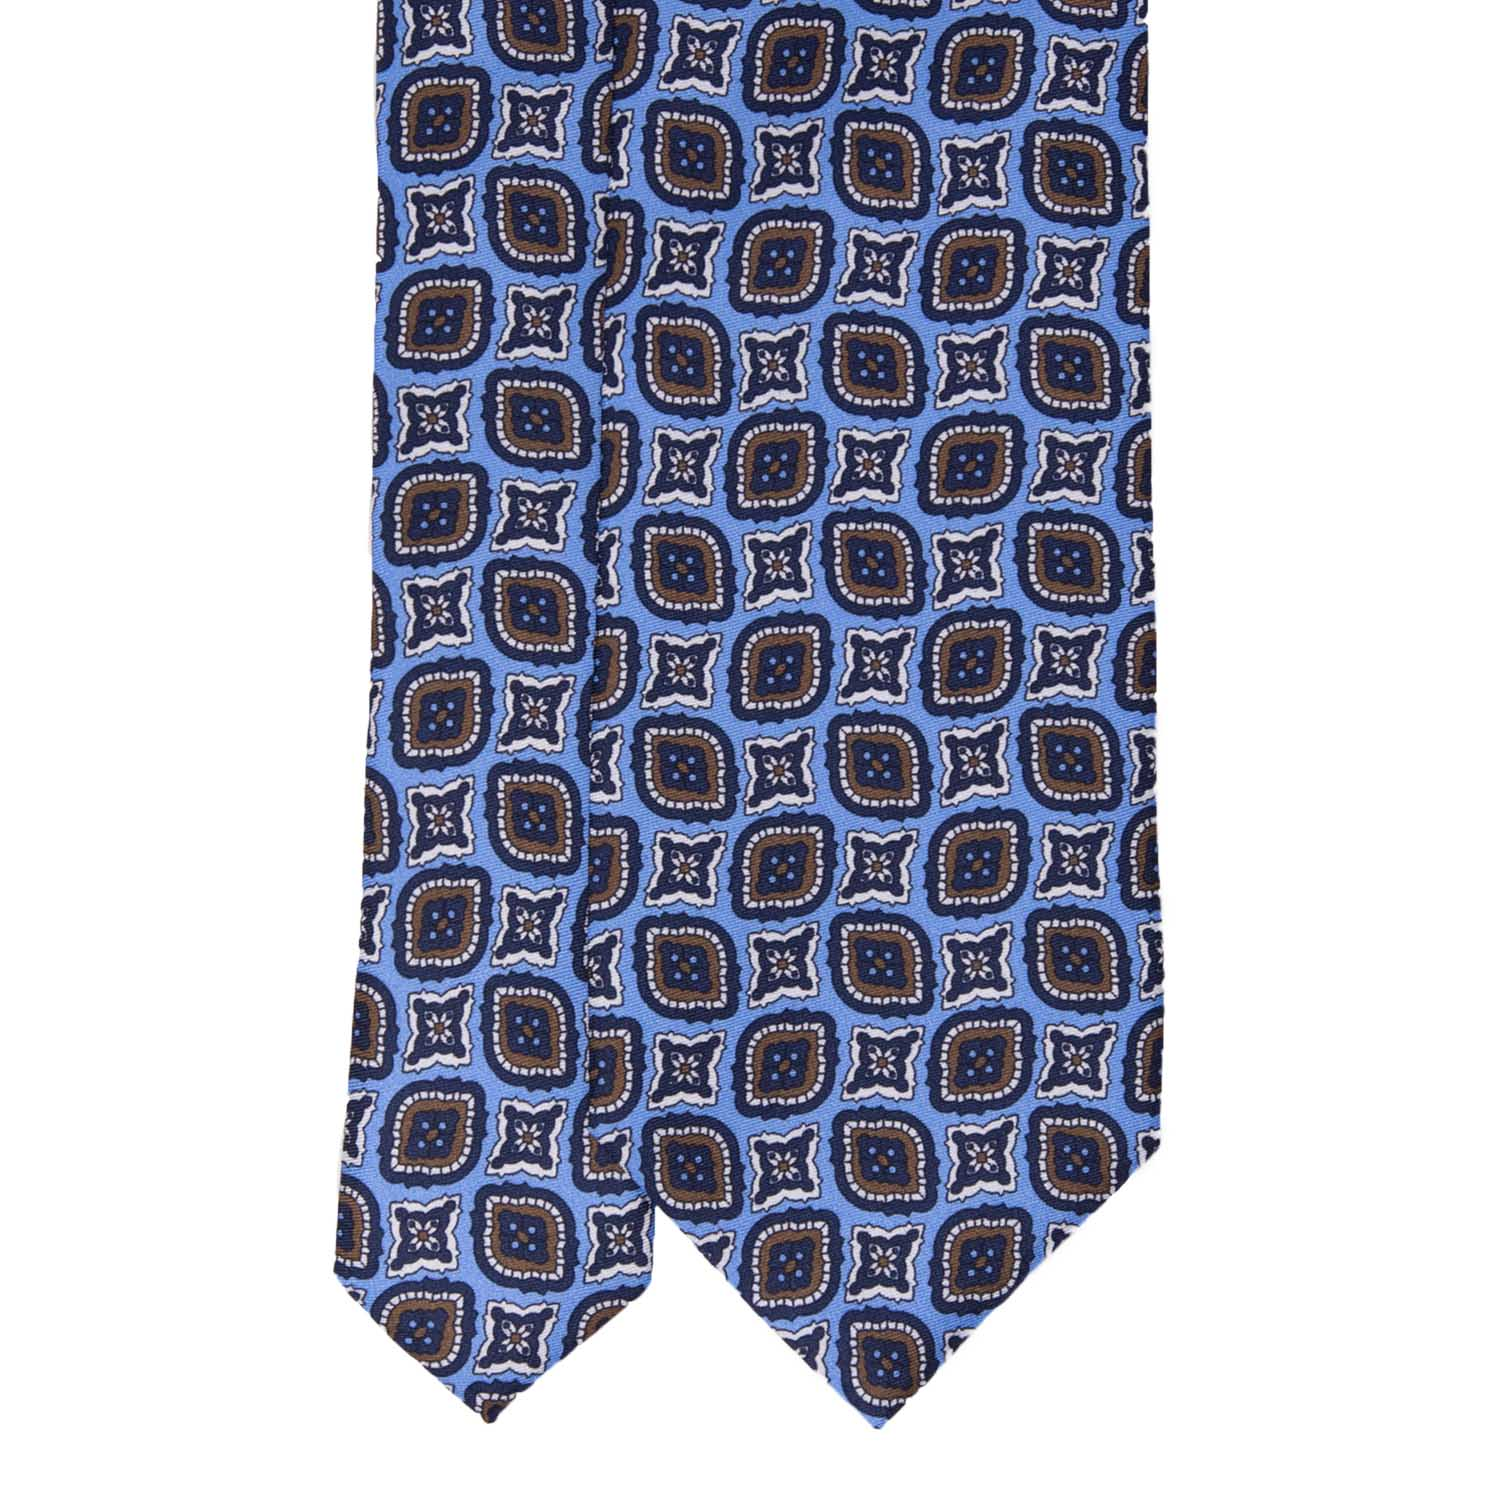 Light Blue with Navy Blue Medaillon Pattern Silk Tie - serafinesilk